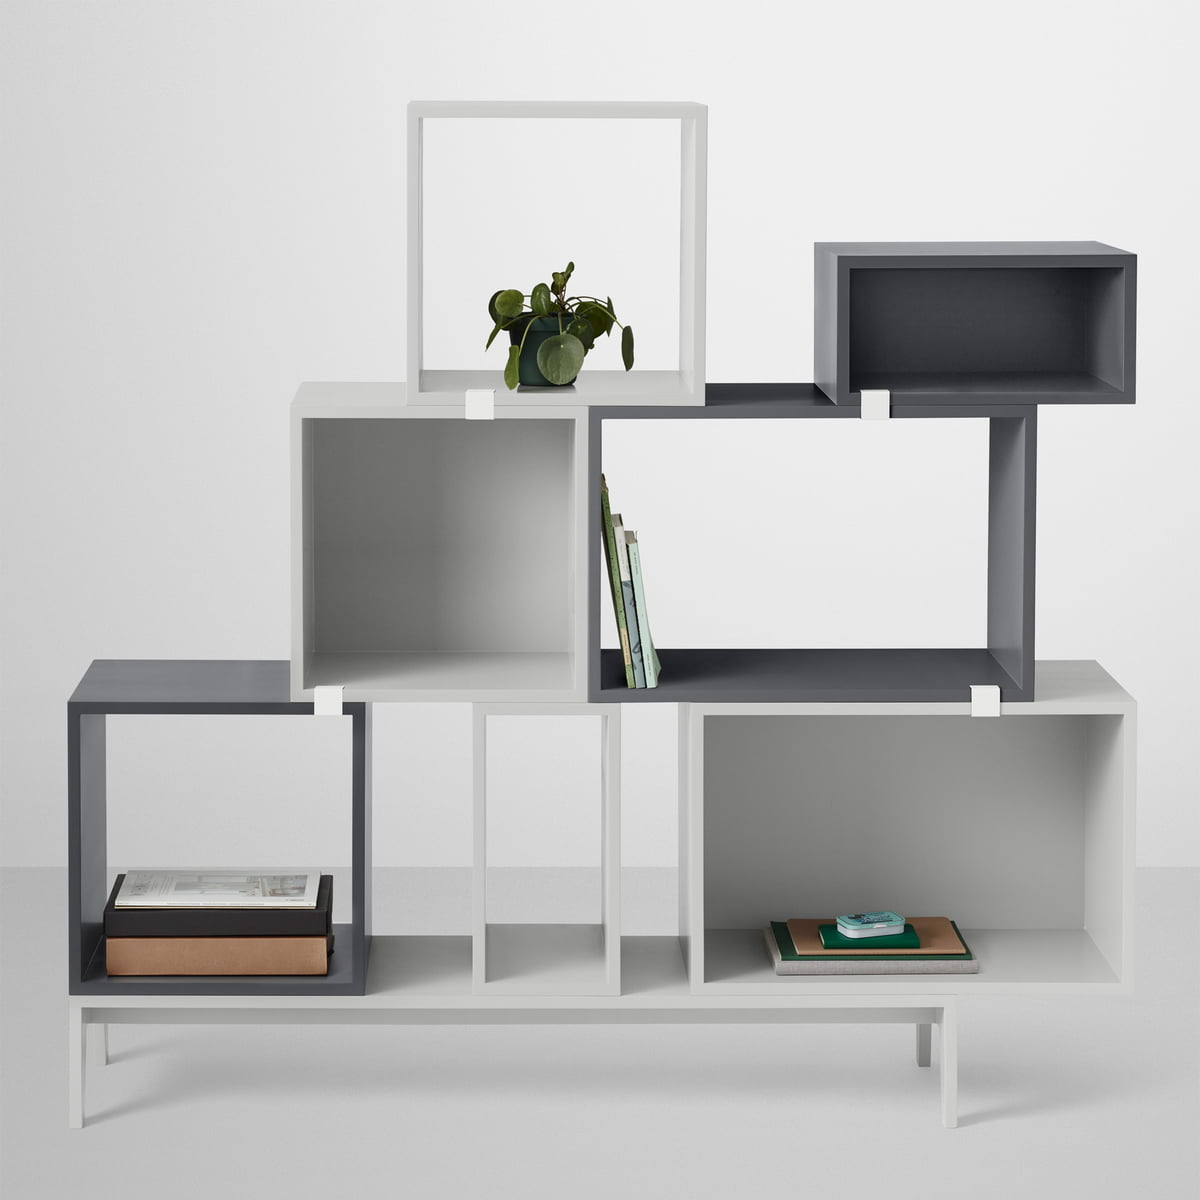 stacked modulopbygget reolsystem i m rkegr fra muuto. Black Bedroom Furniture Sets. Home Design Ideas